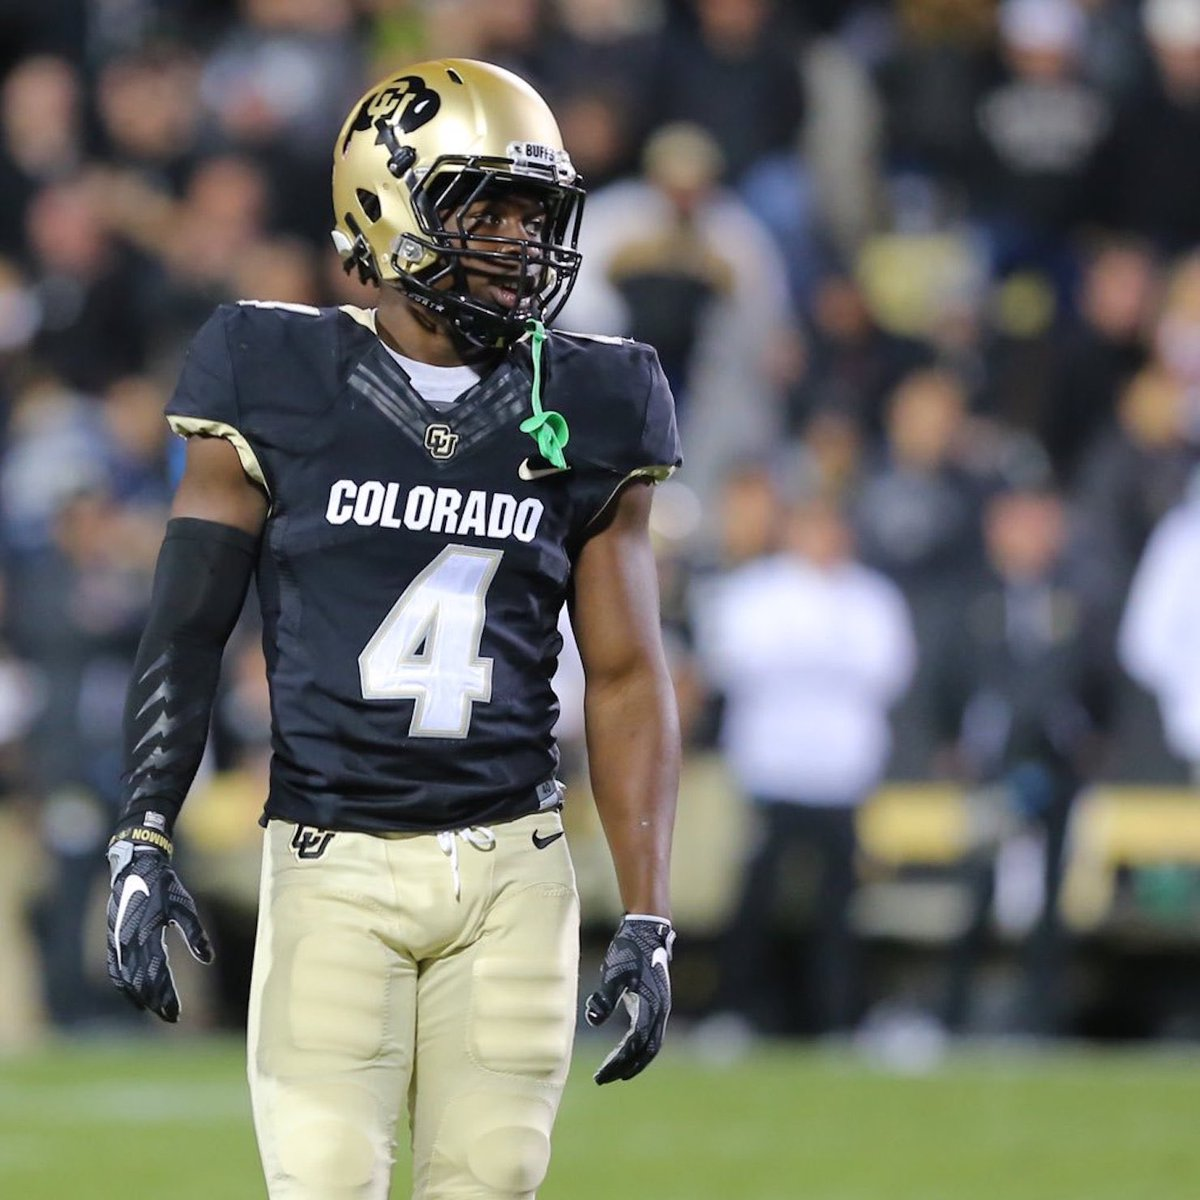 ☥God is Great ☥                                         Blessed to Receive an Offer from the University of Colorado!!! #CUlture @coach_meatpic.twitter.com/5LOYZL9241